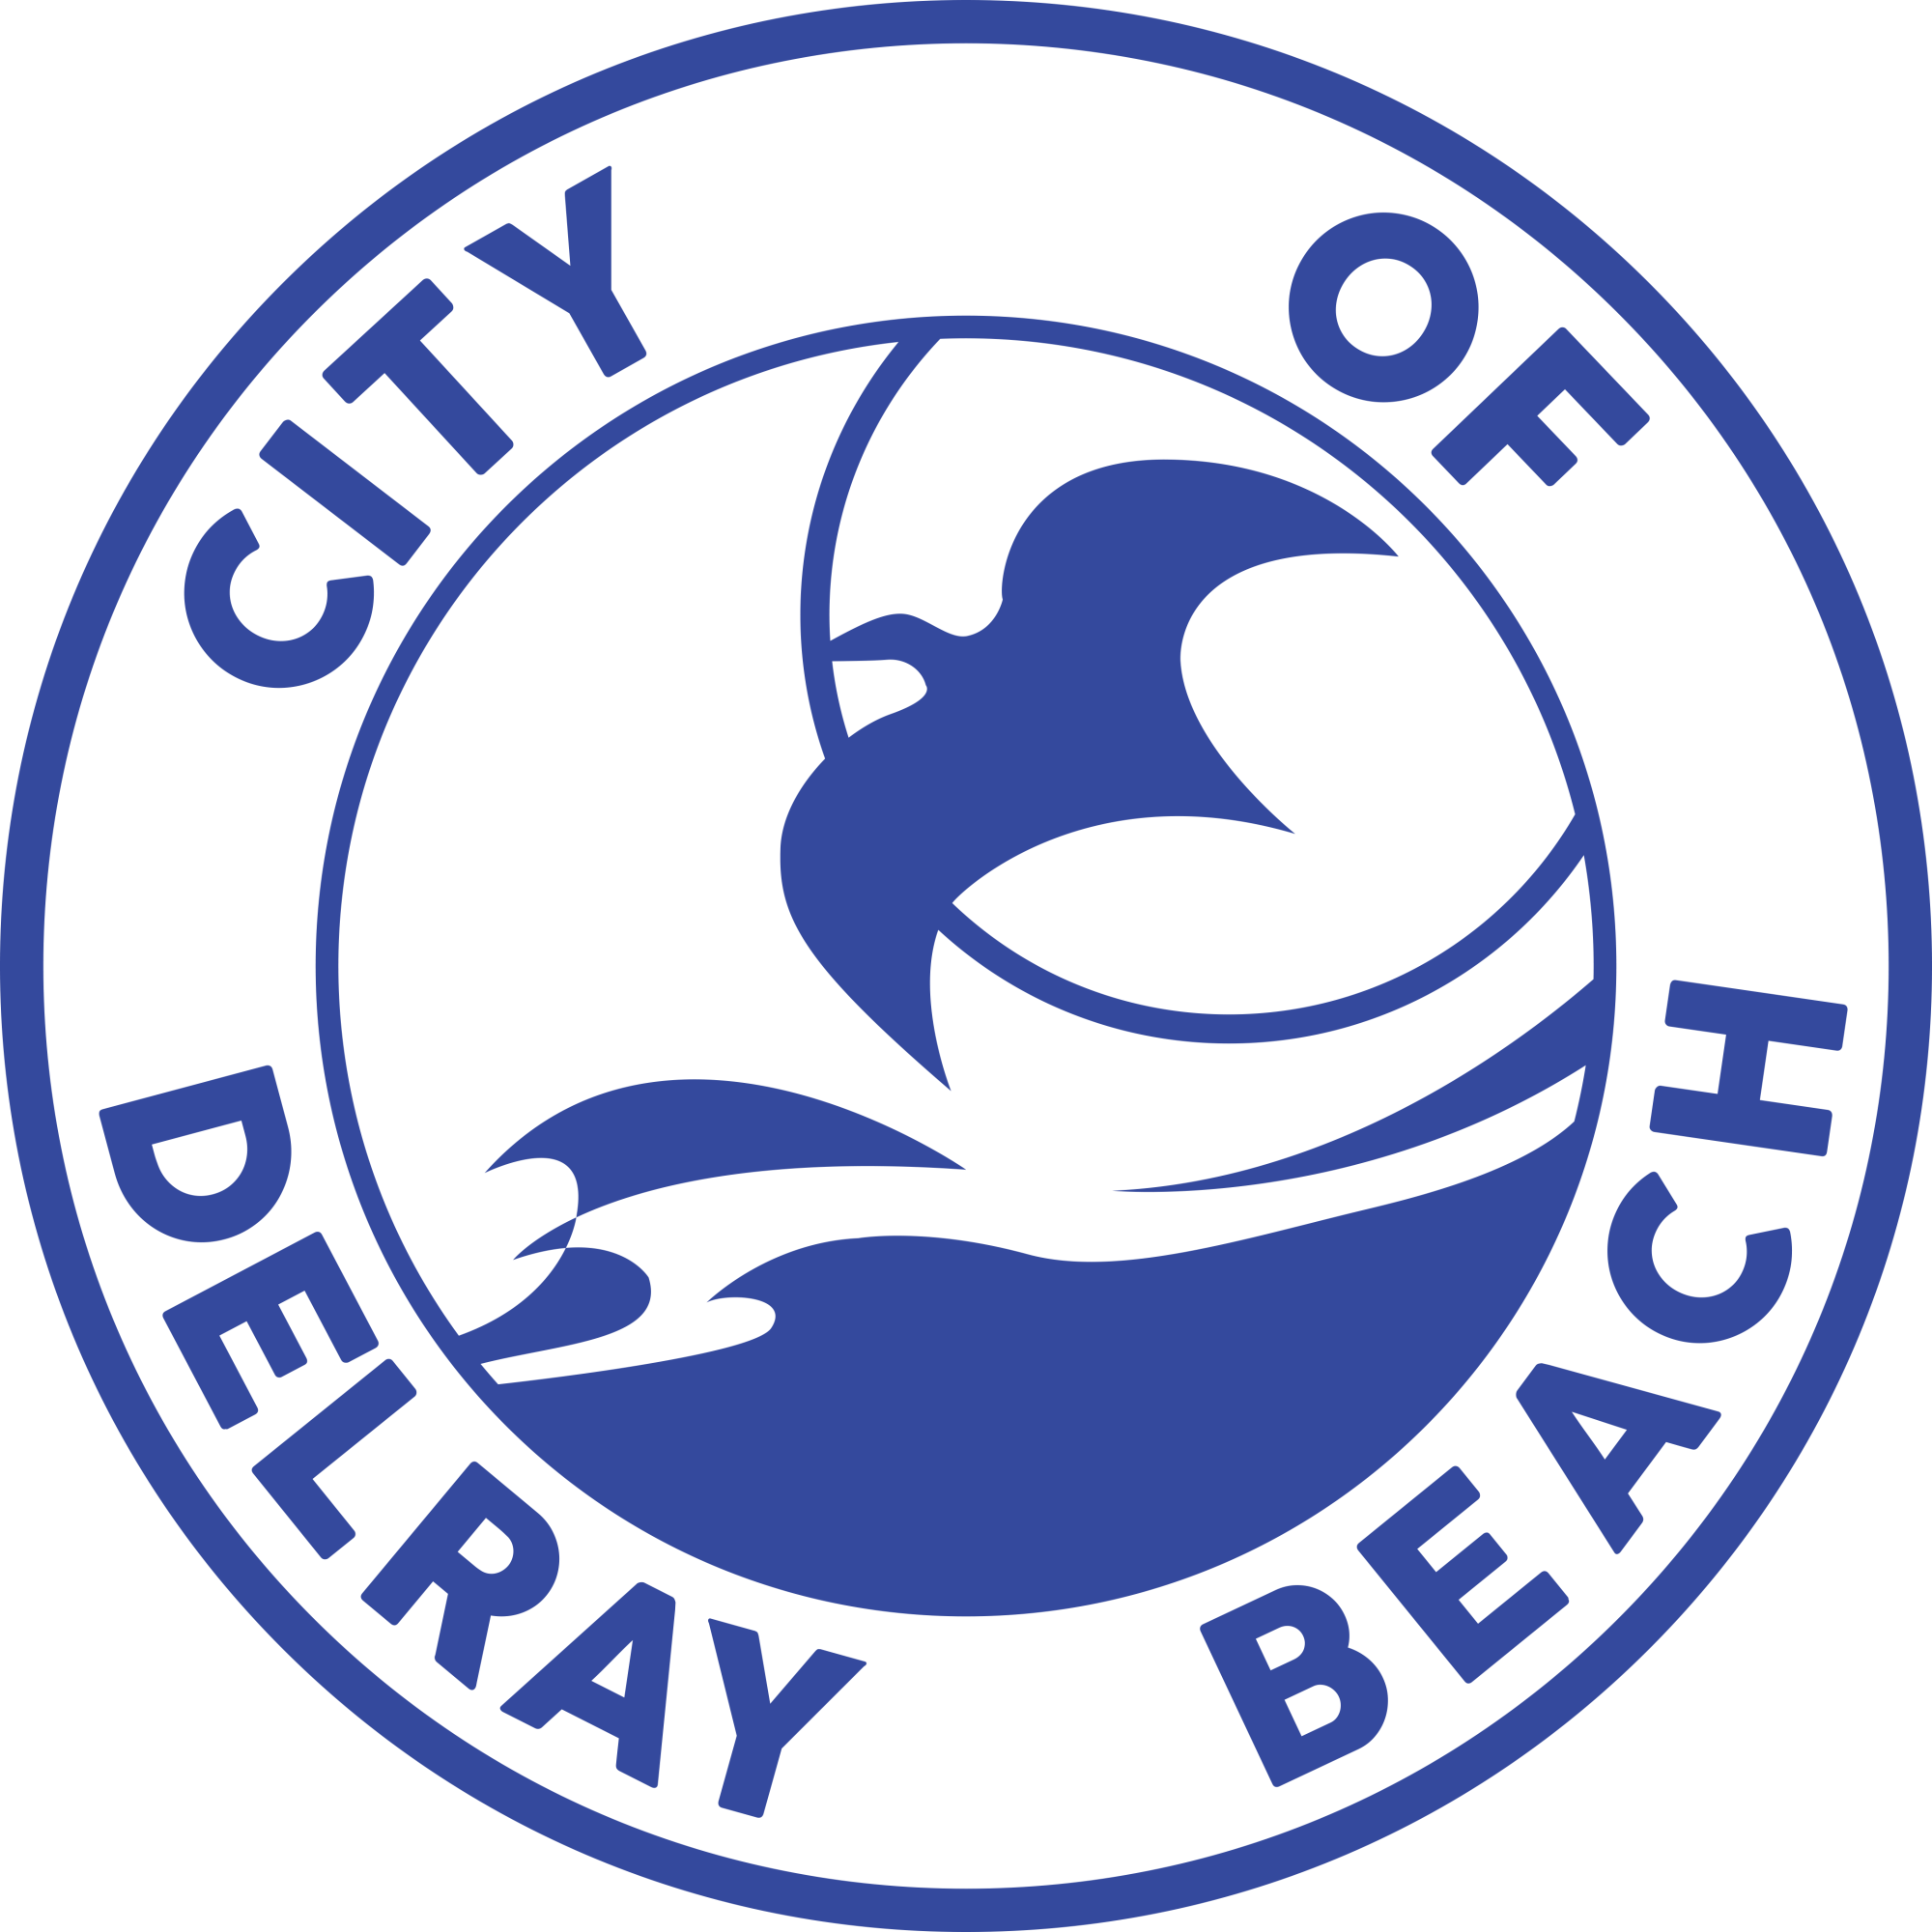 City of Delray Beach logo CMYK Primary Blue